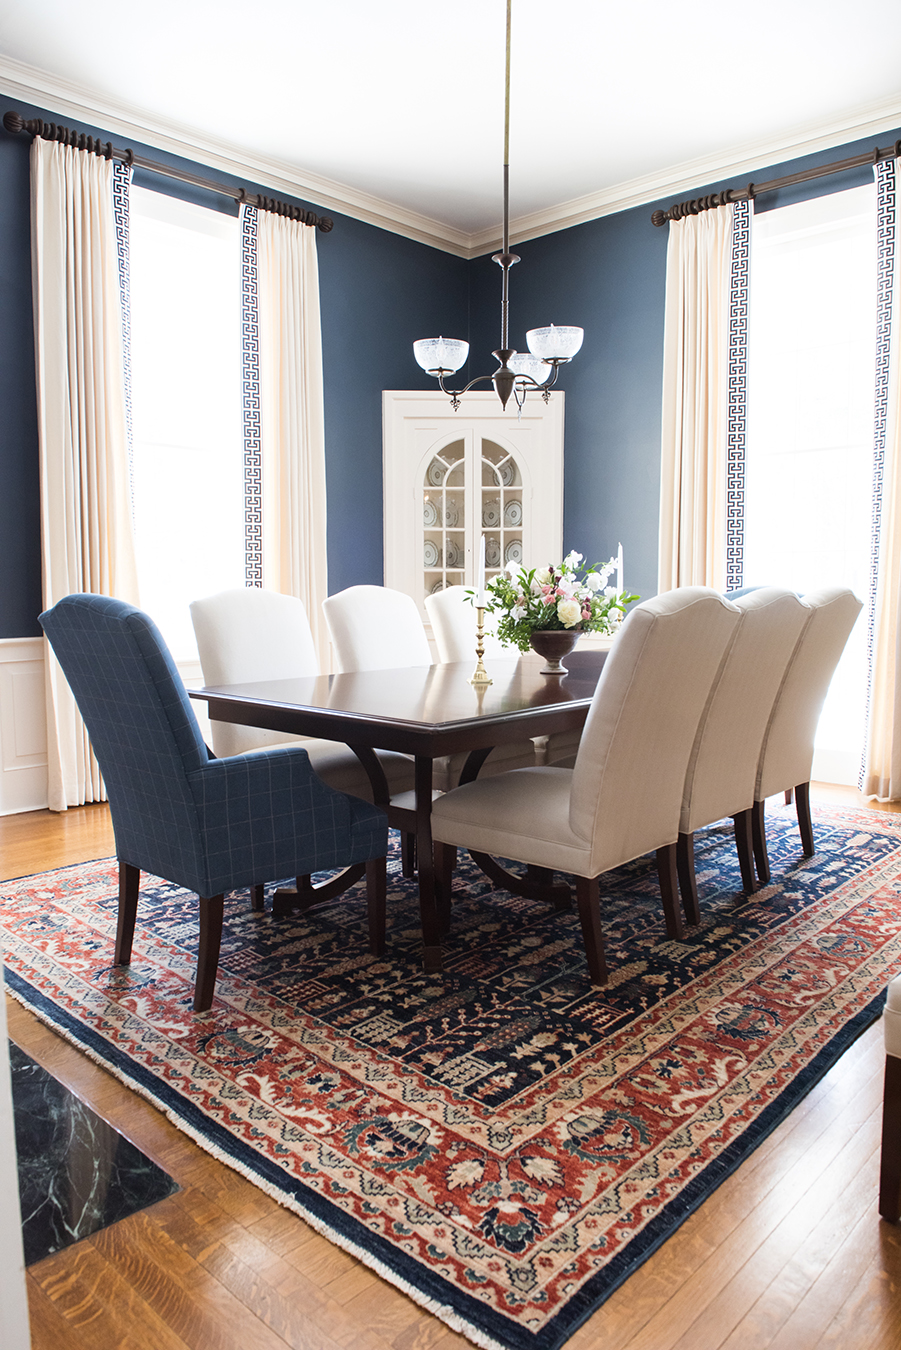 Dining area ideas